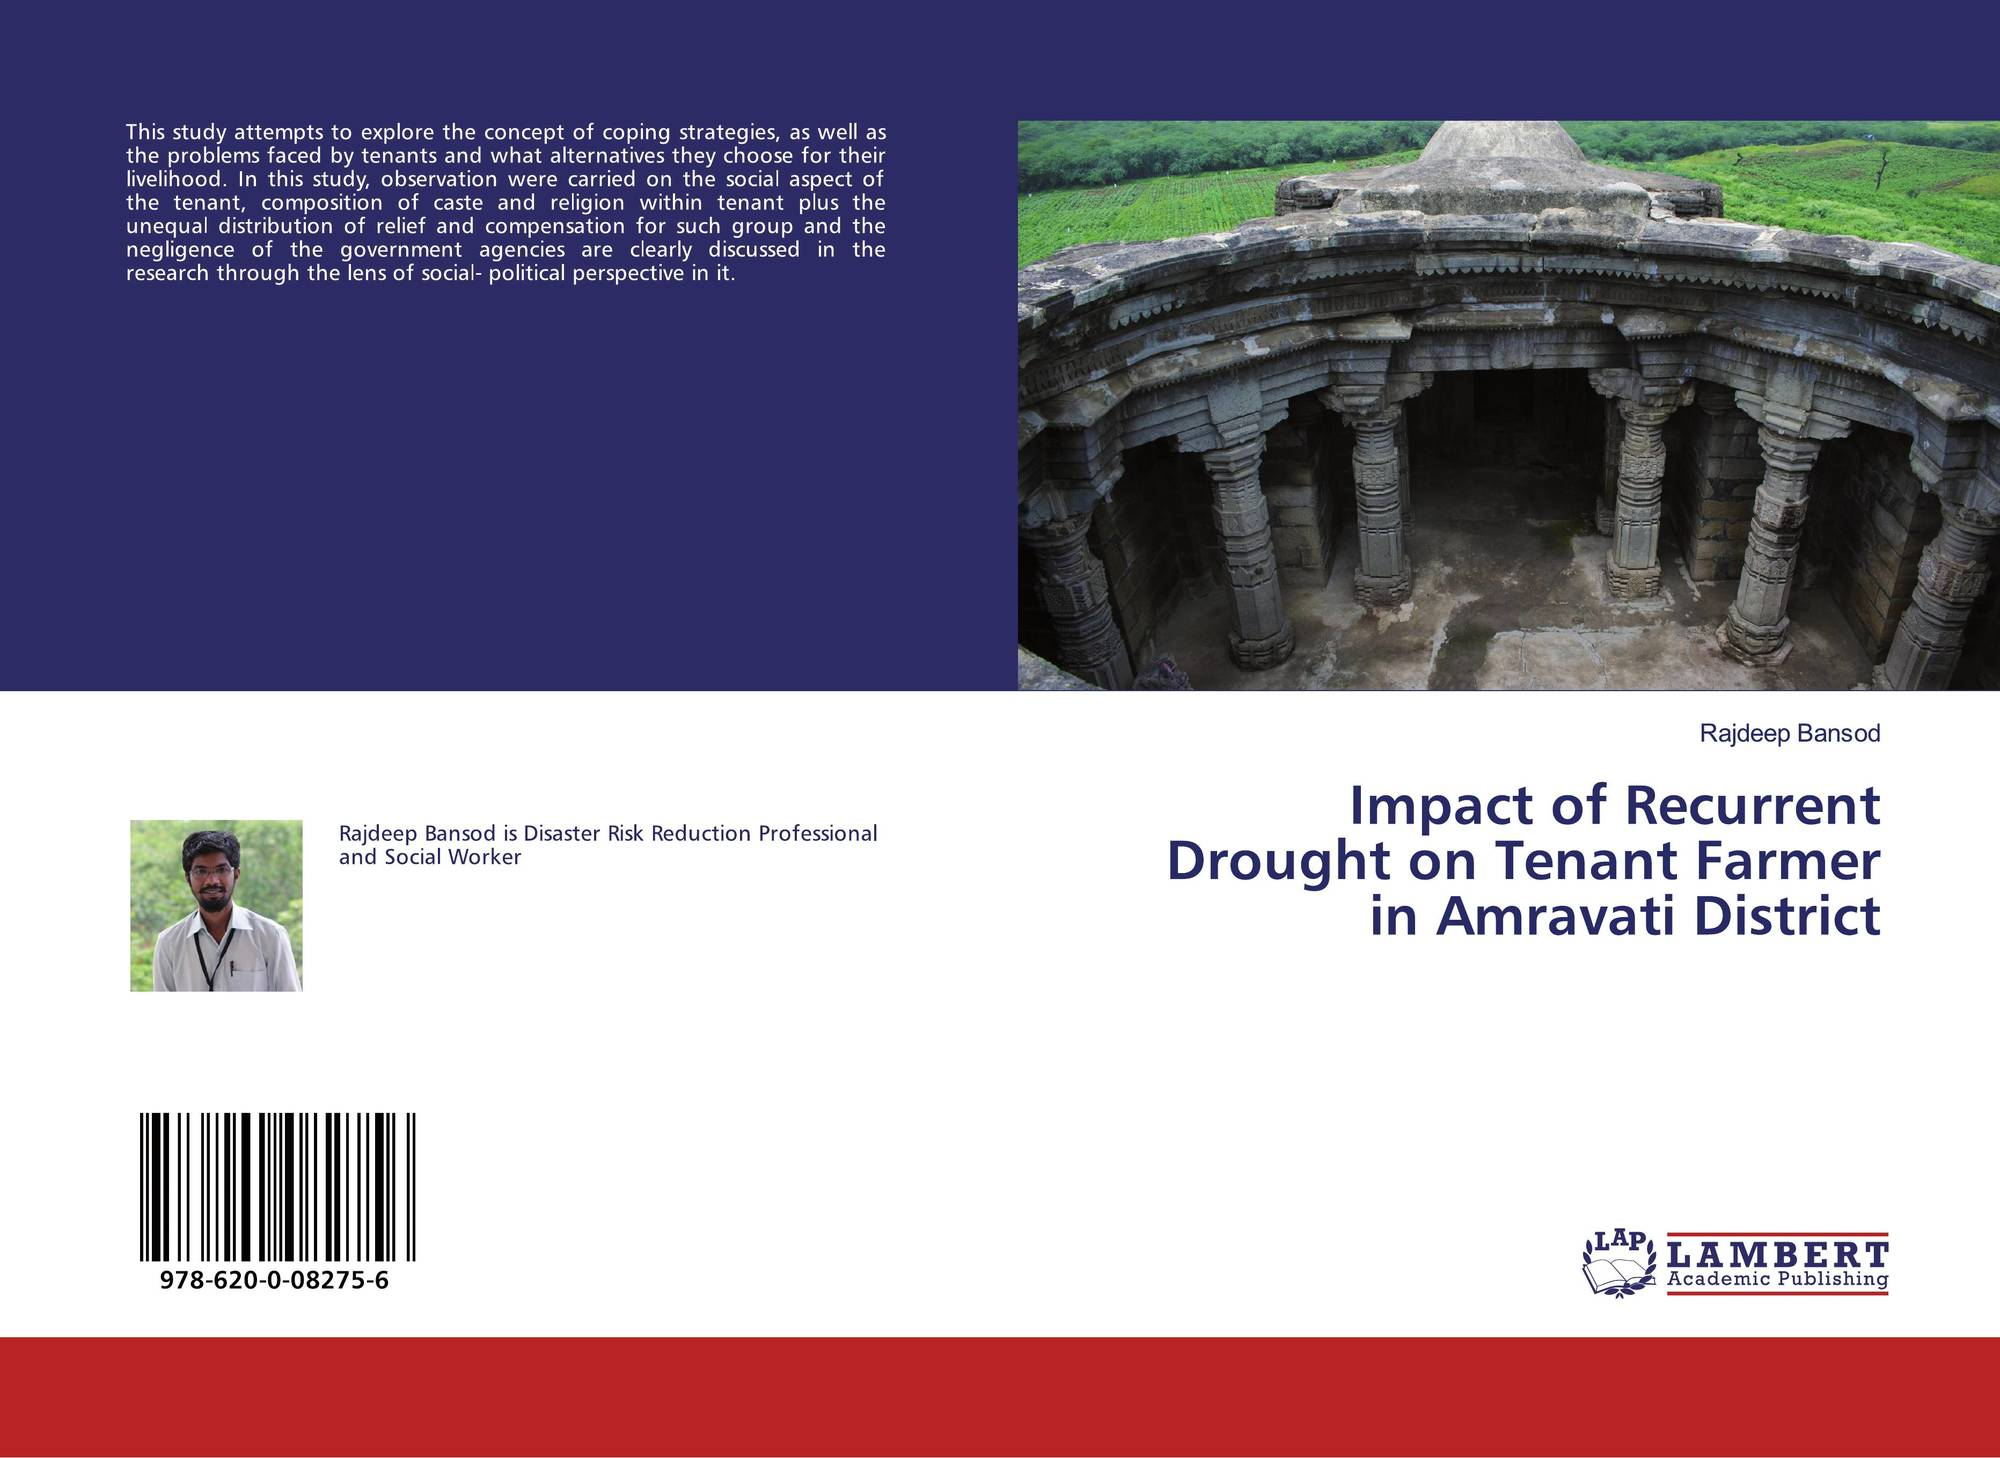 Impact of Recurrent Drought on Tenant Farmer in Amravati